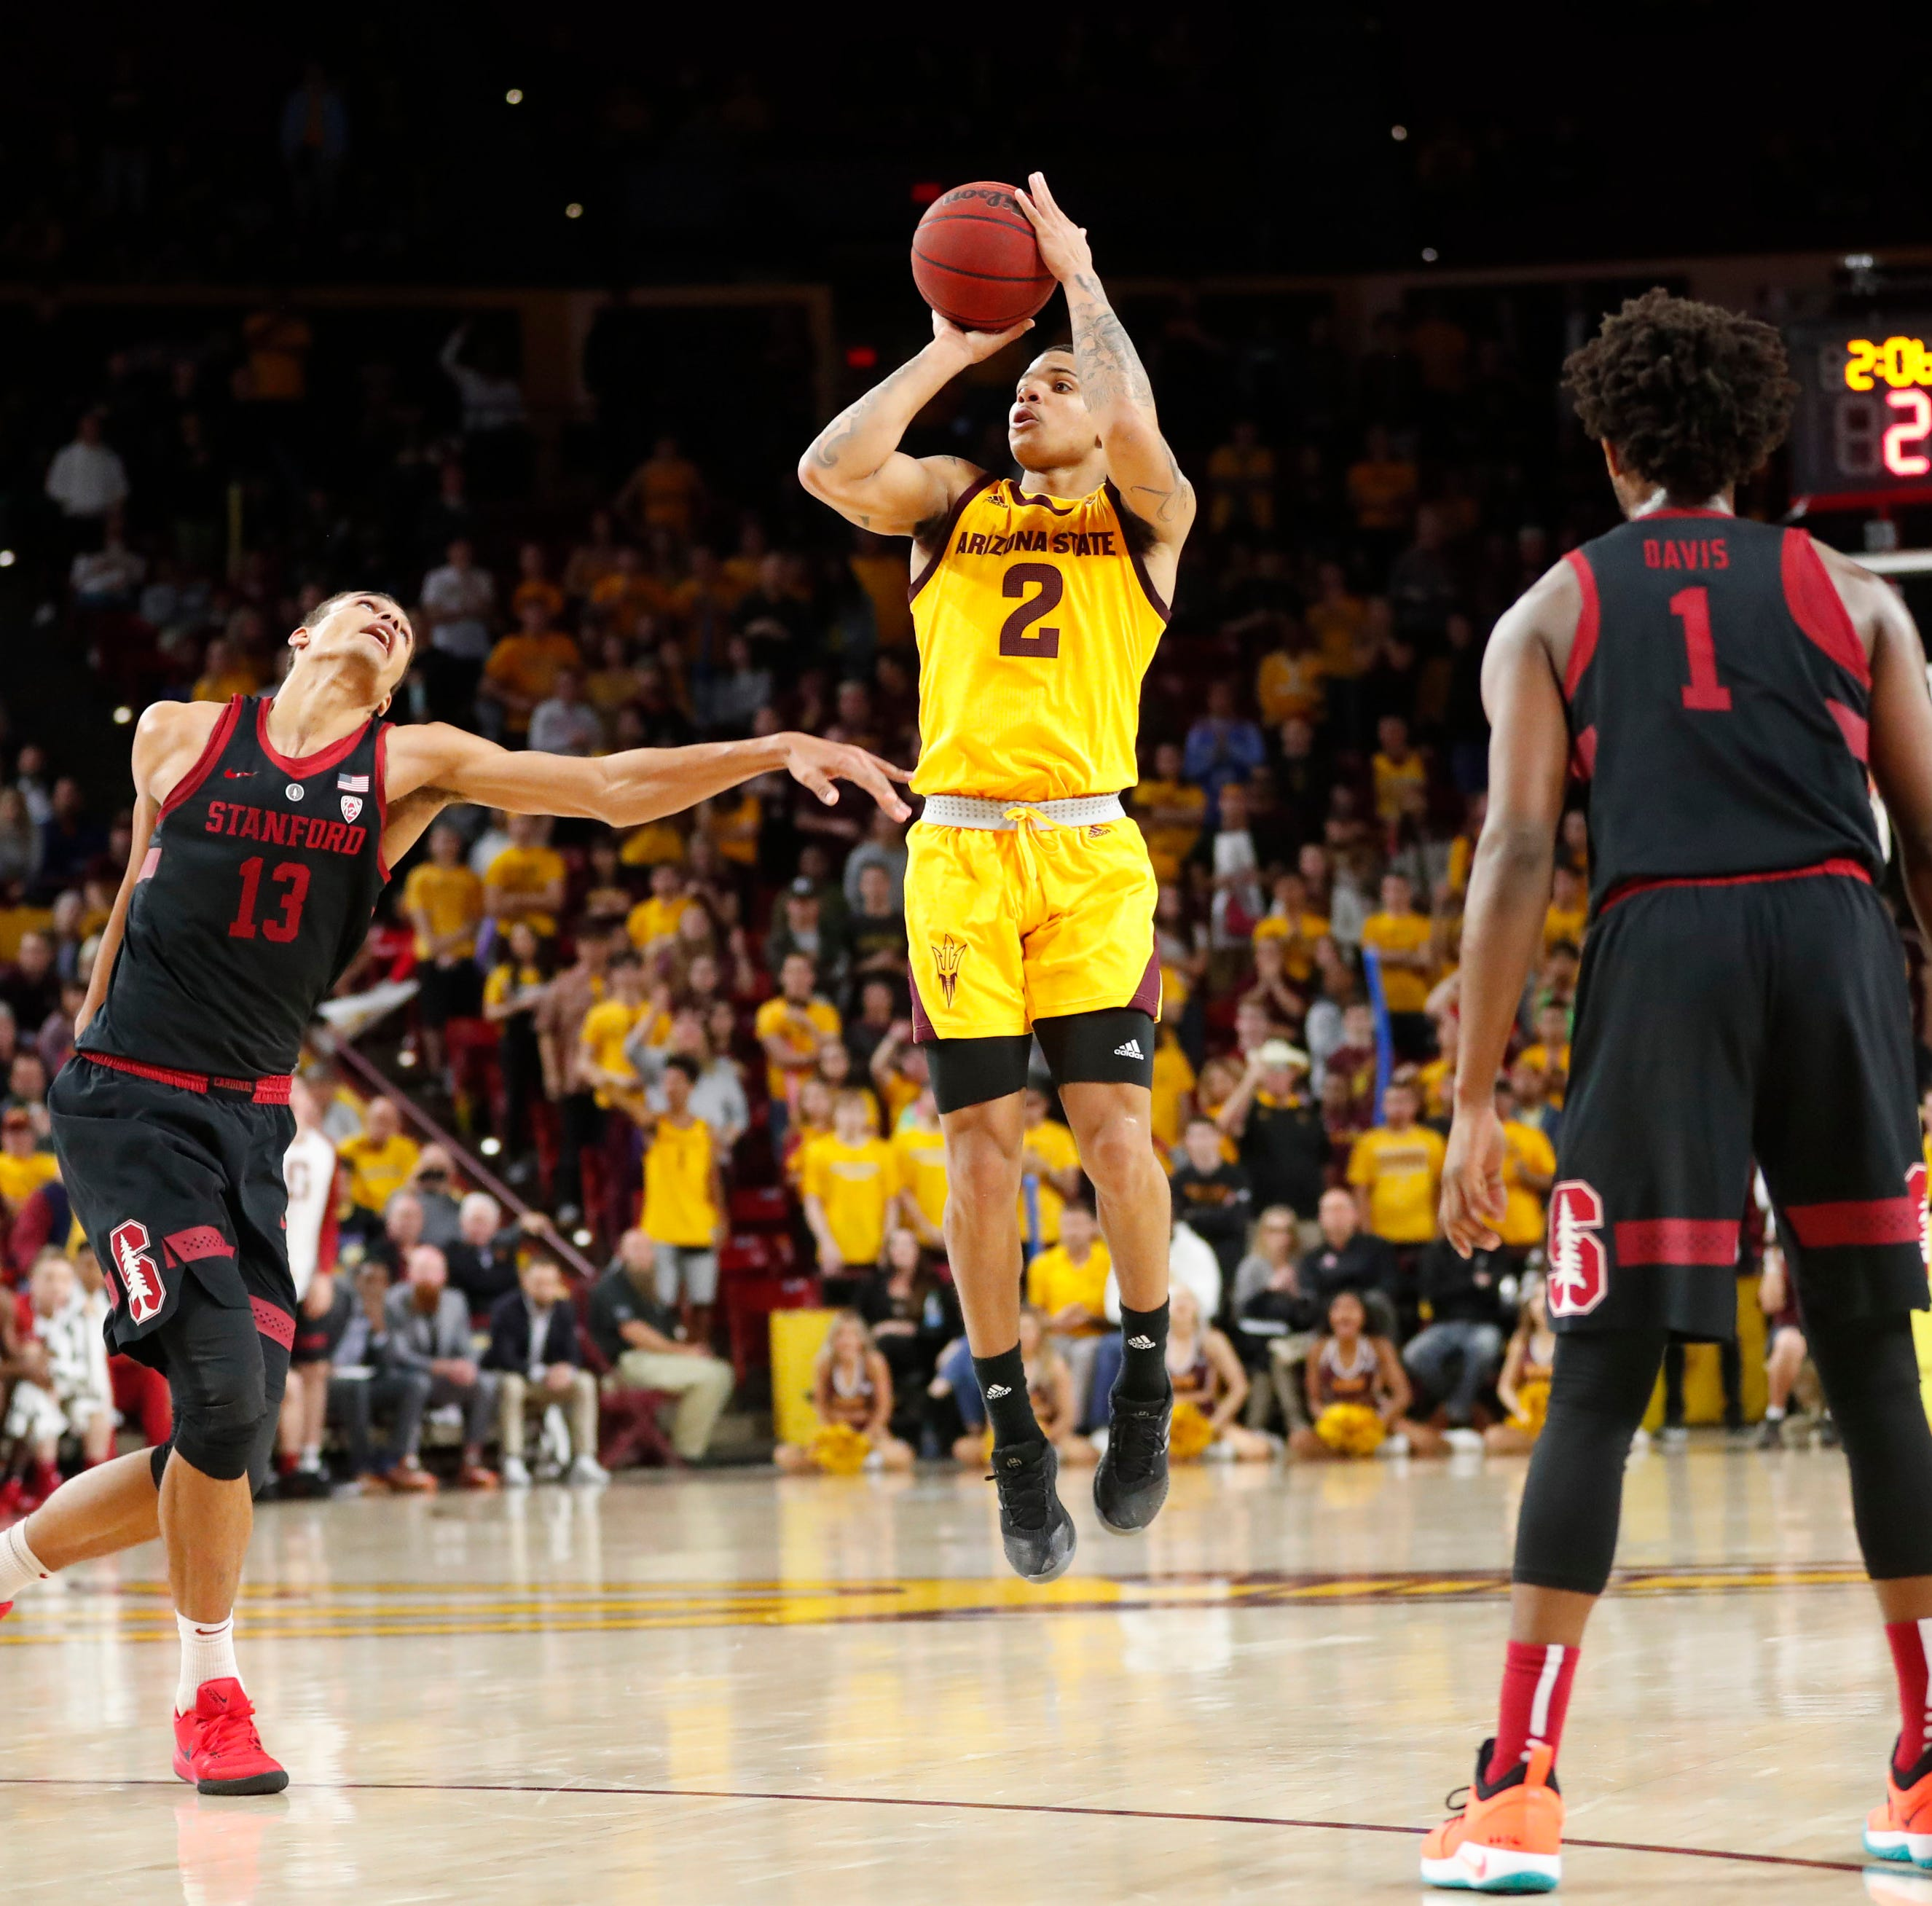 ASU basketball grinds out key home win over cold-shooting Stanford